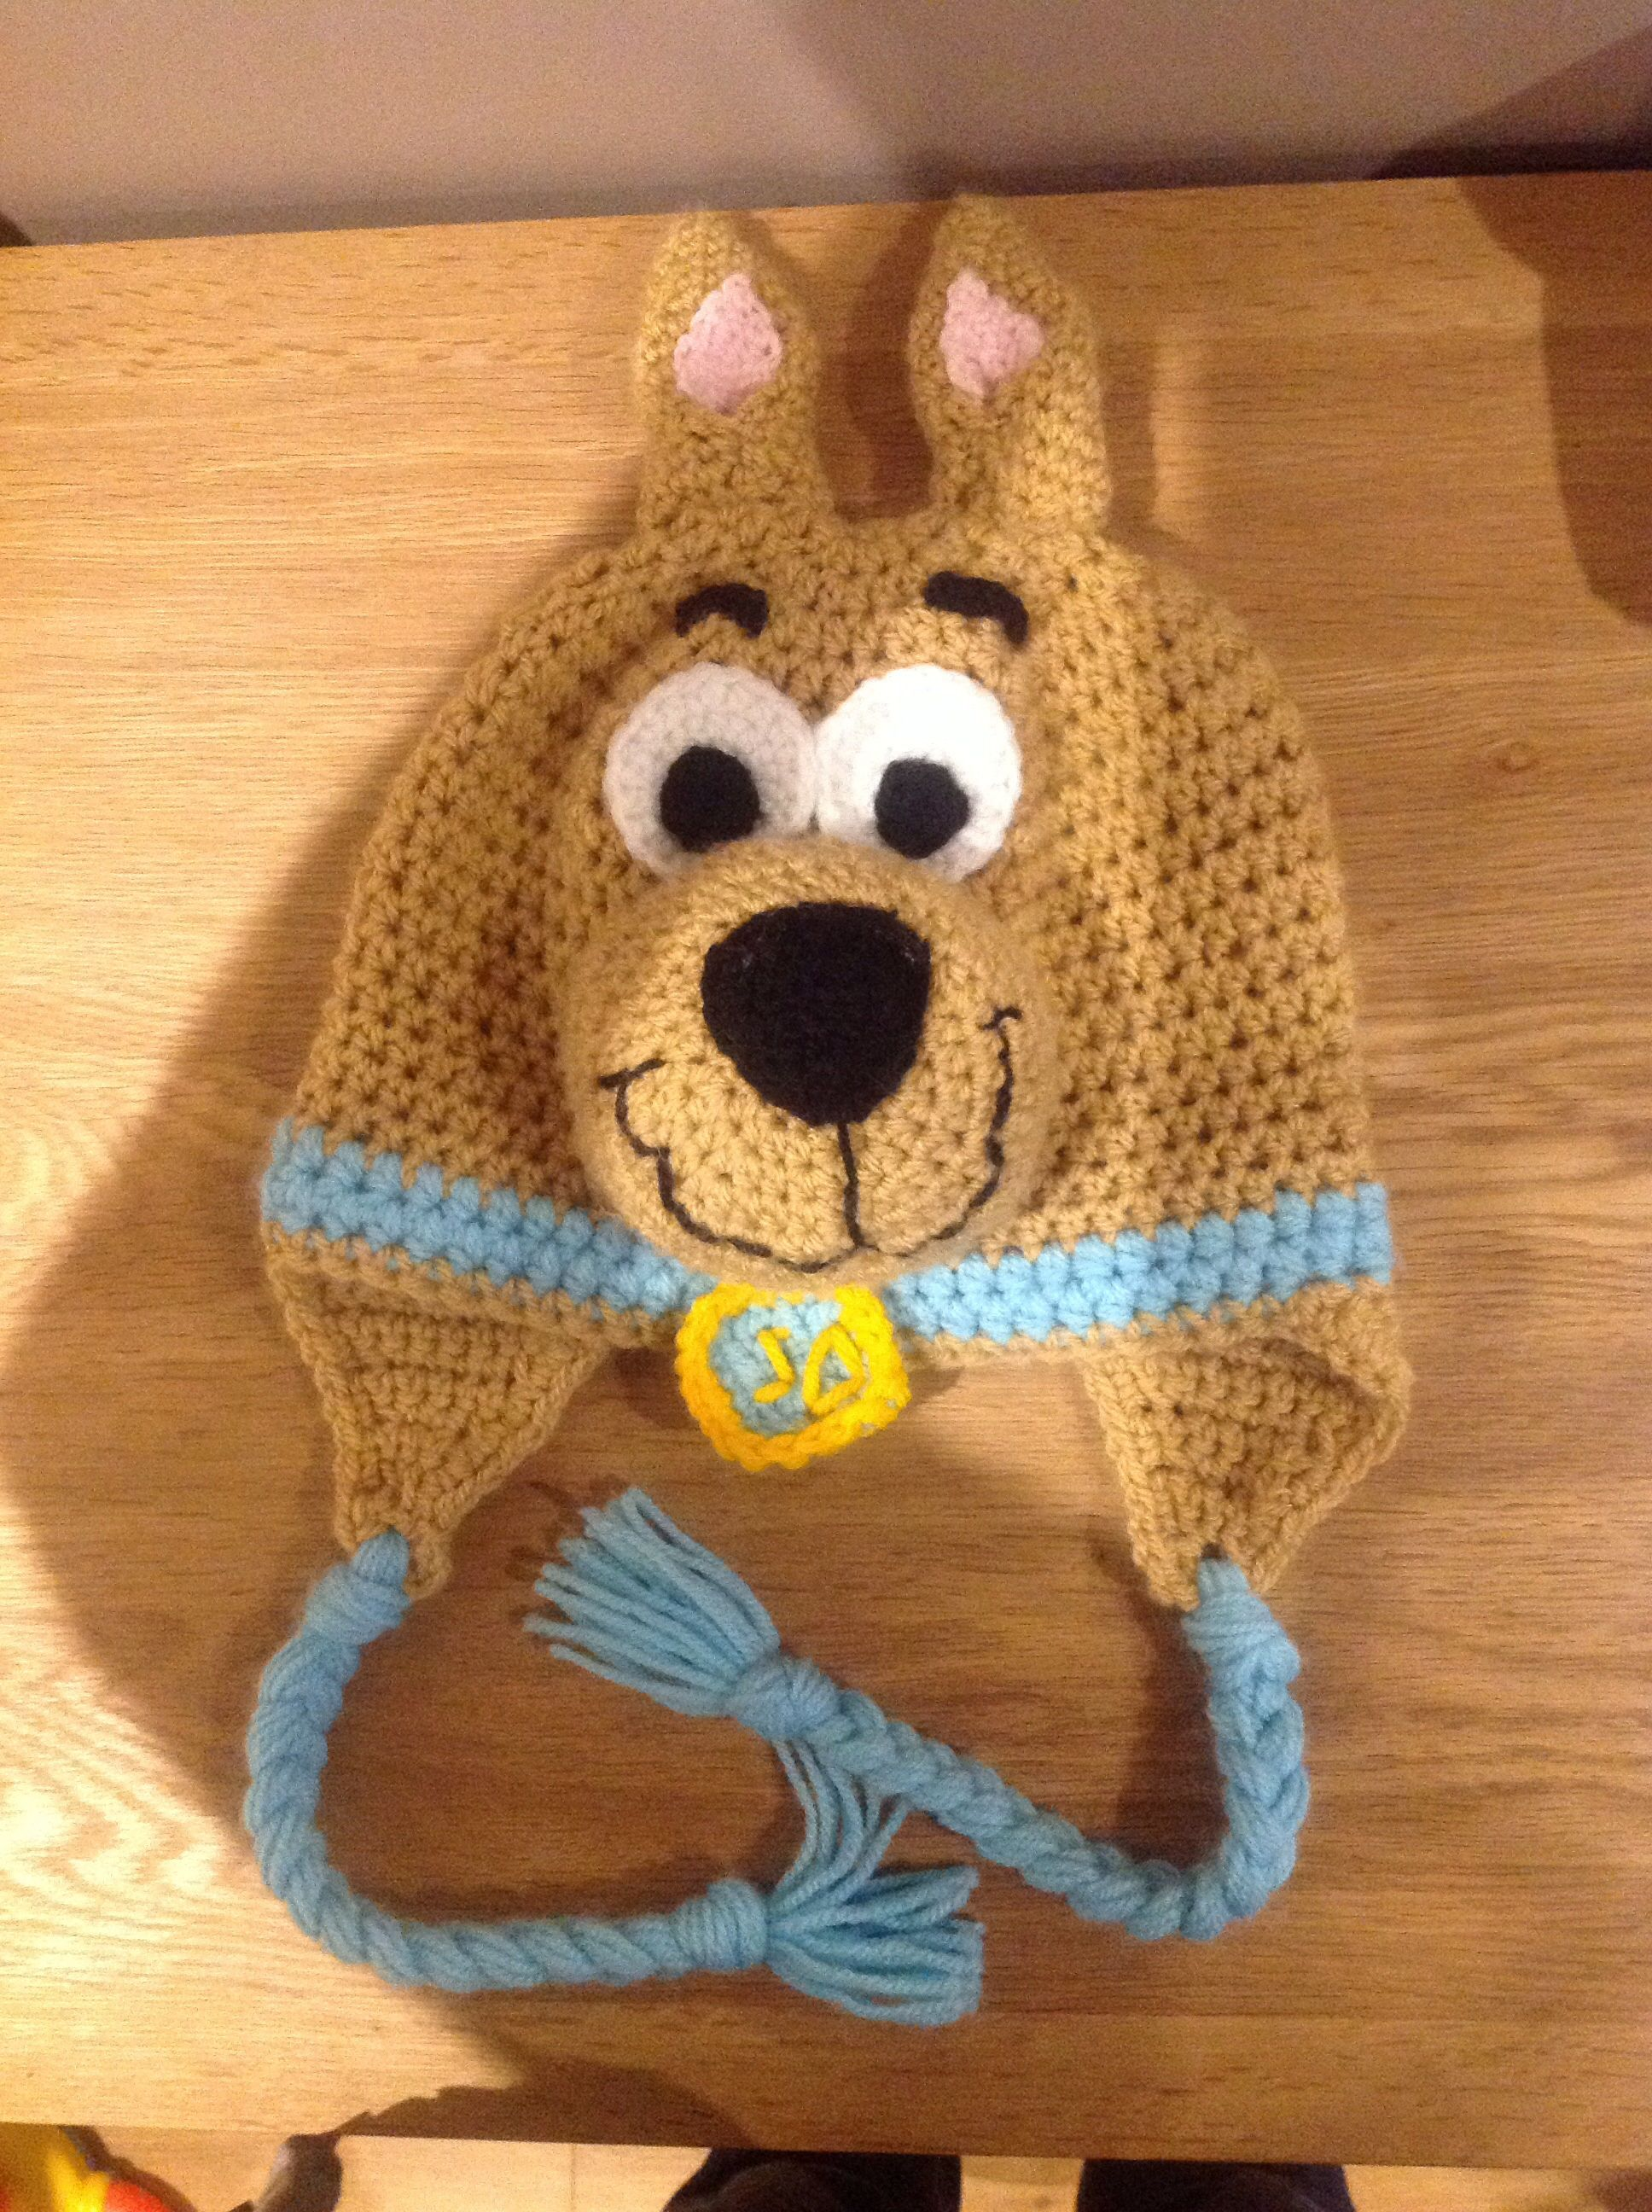 Scooby doo crochet hat | crochet | Pinterest | Kindermütze, Stricken ...